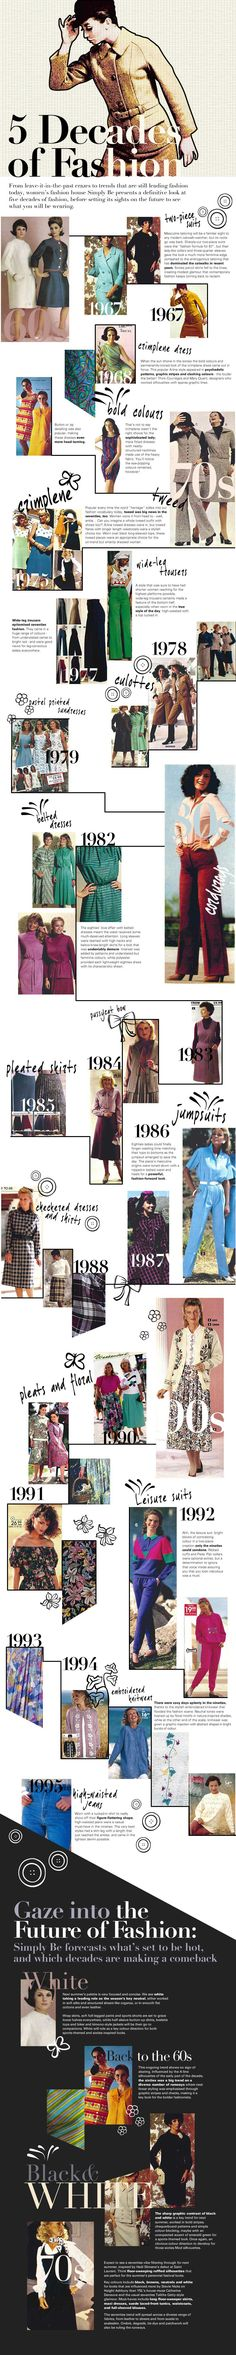 5 Decades of Fashion- this makes me happy :)